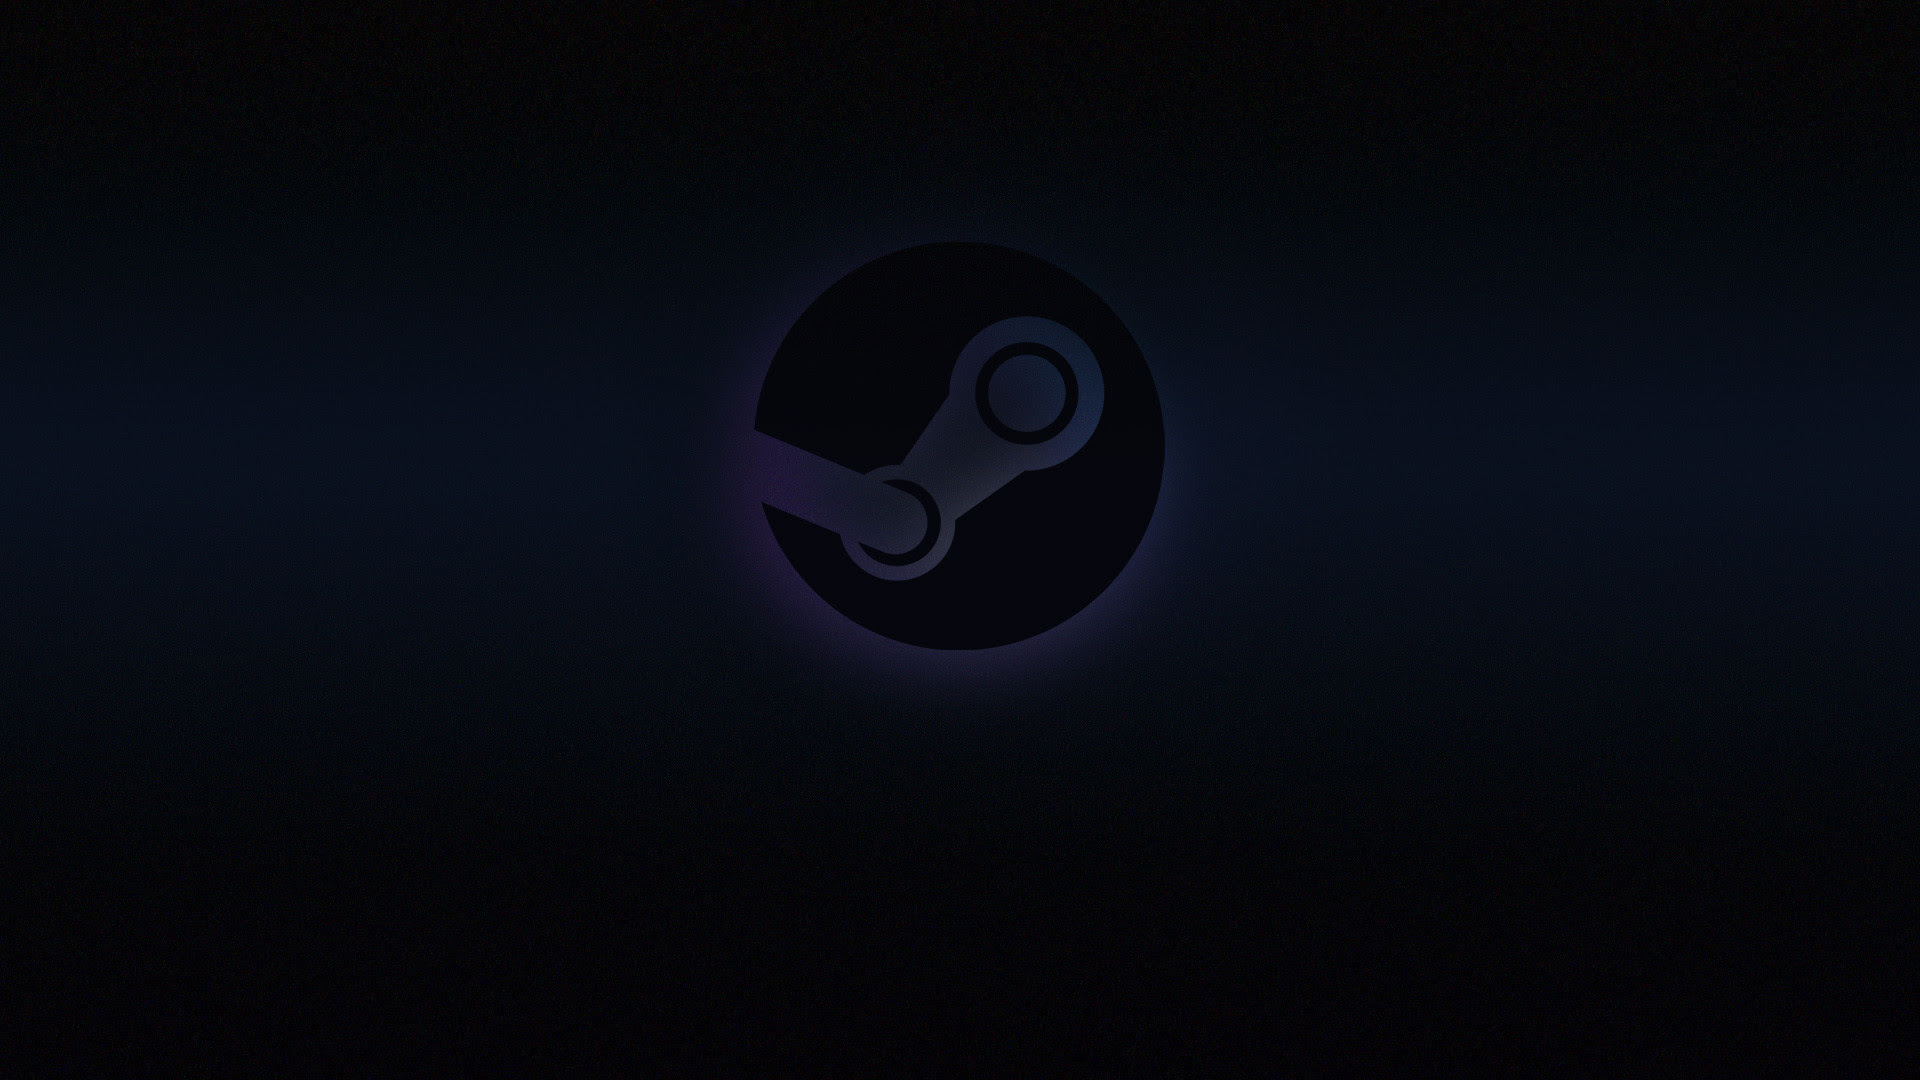 Steam Os Wallpaper 85 Images